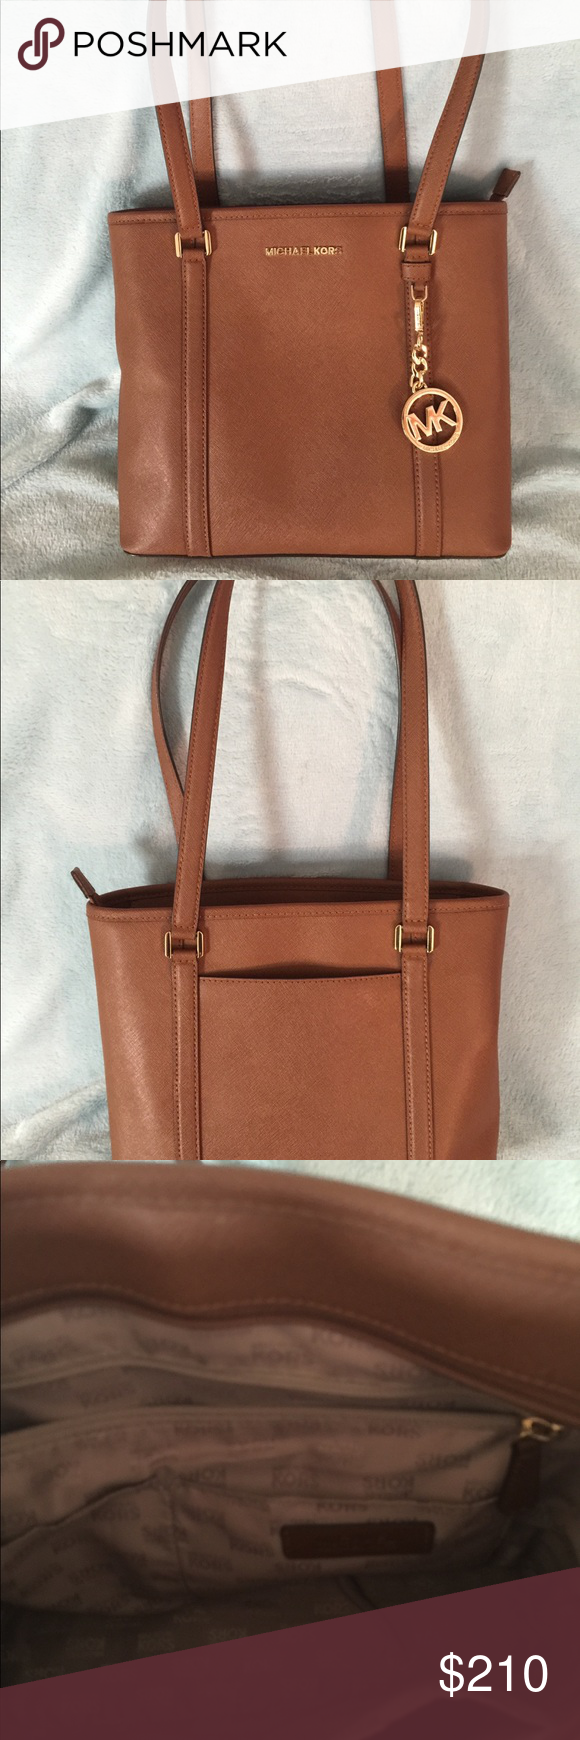 Michael Kors brown purse Michael Kors brown purse with MK logo gold chain.  Used purse. Make a offer All offers will be considered Michael Kors Bags  Shoulder ... 58e69c3443